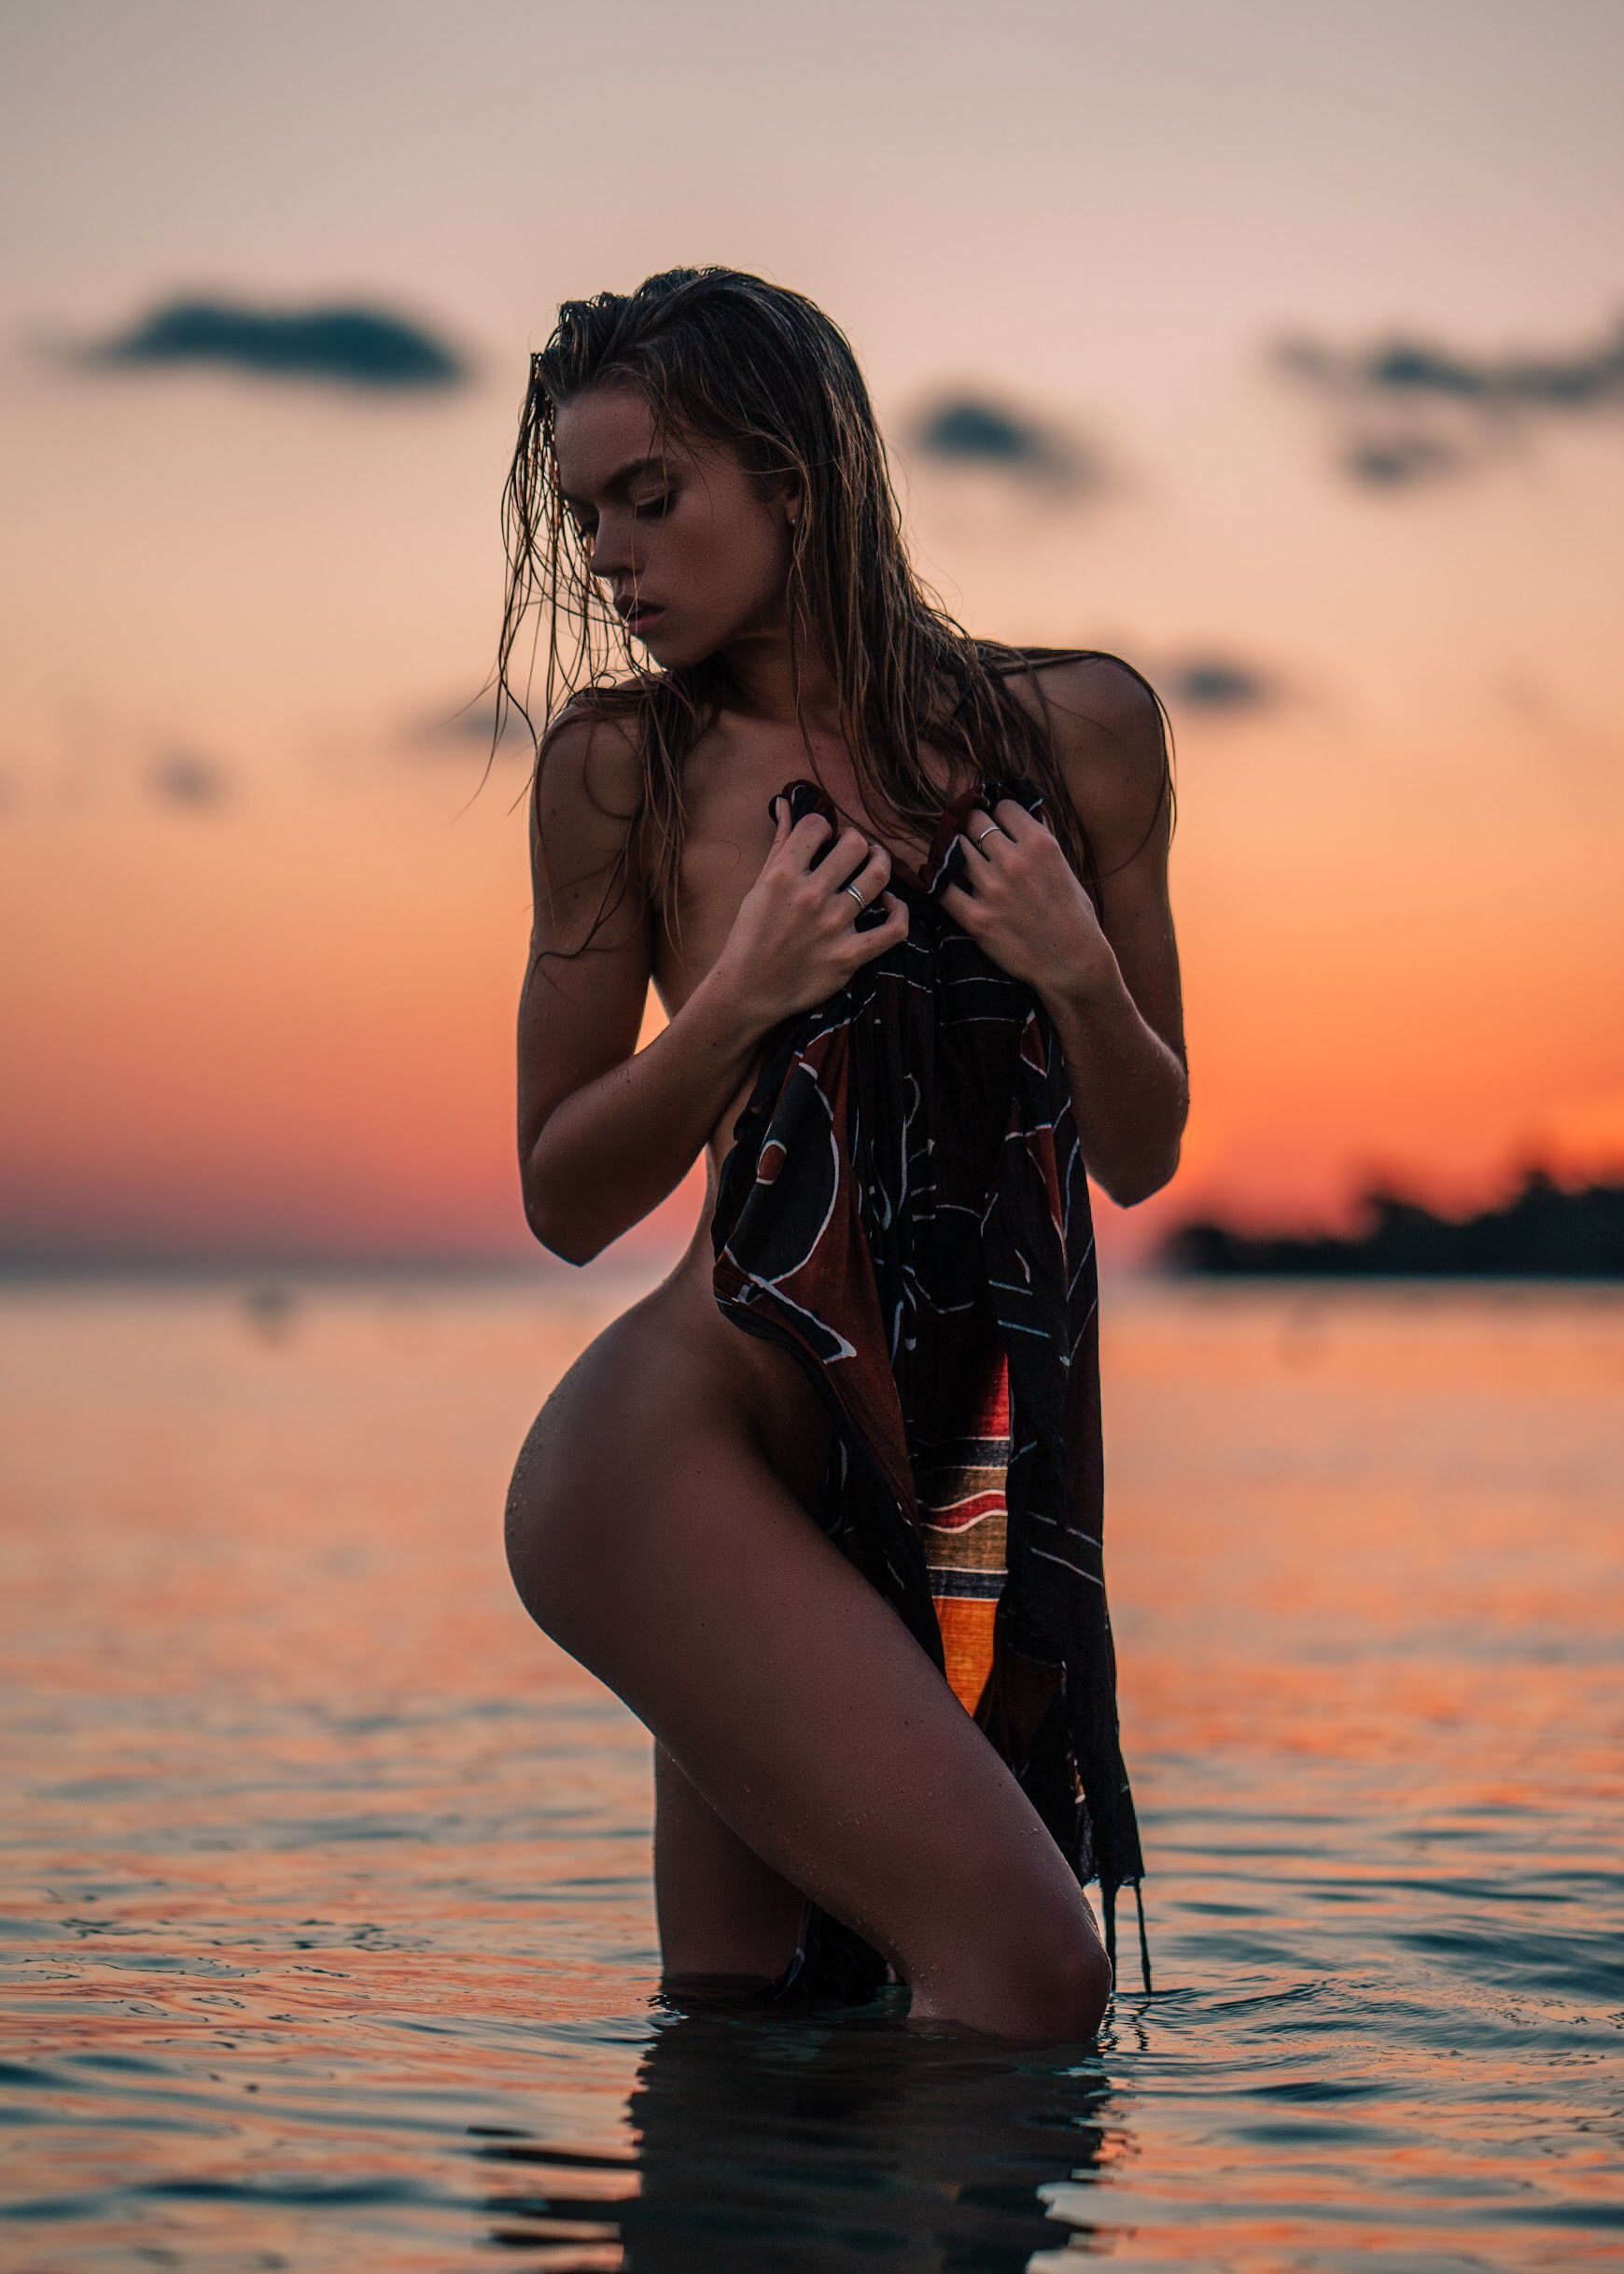 84ad07537ce79 Paige Munroe in Jamaica shot by Alex Williams